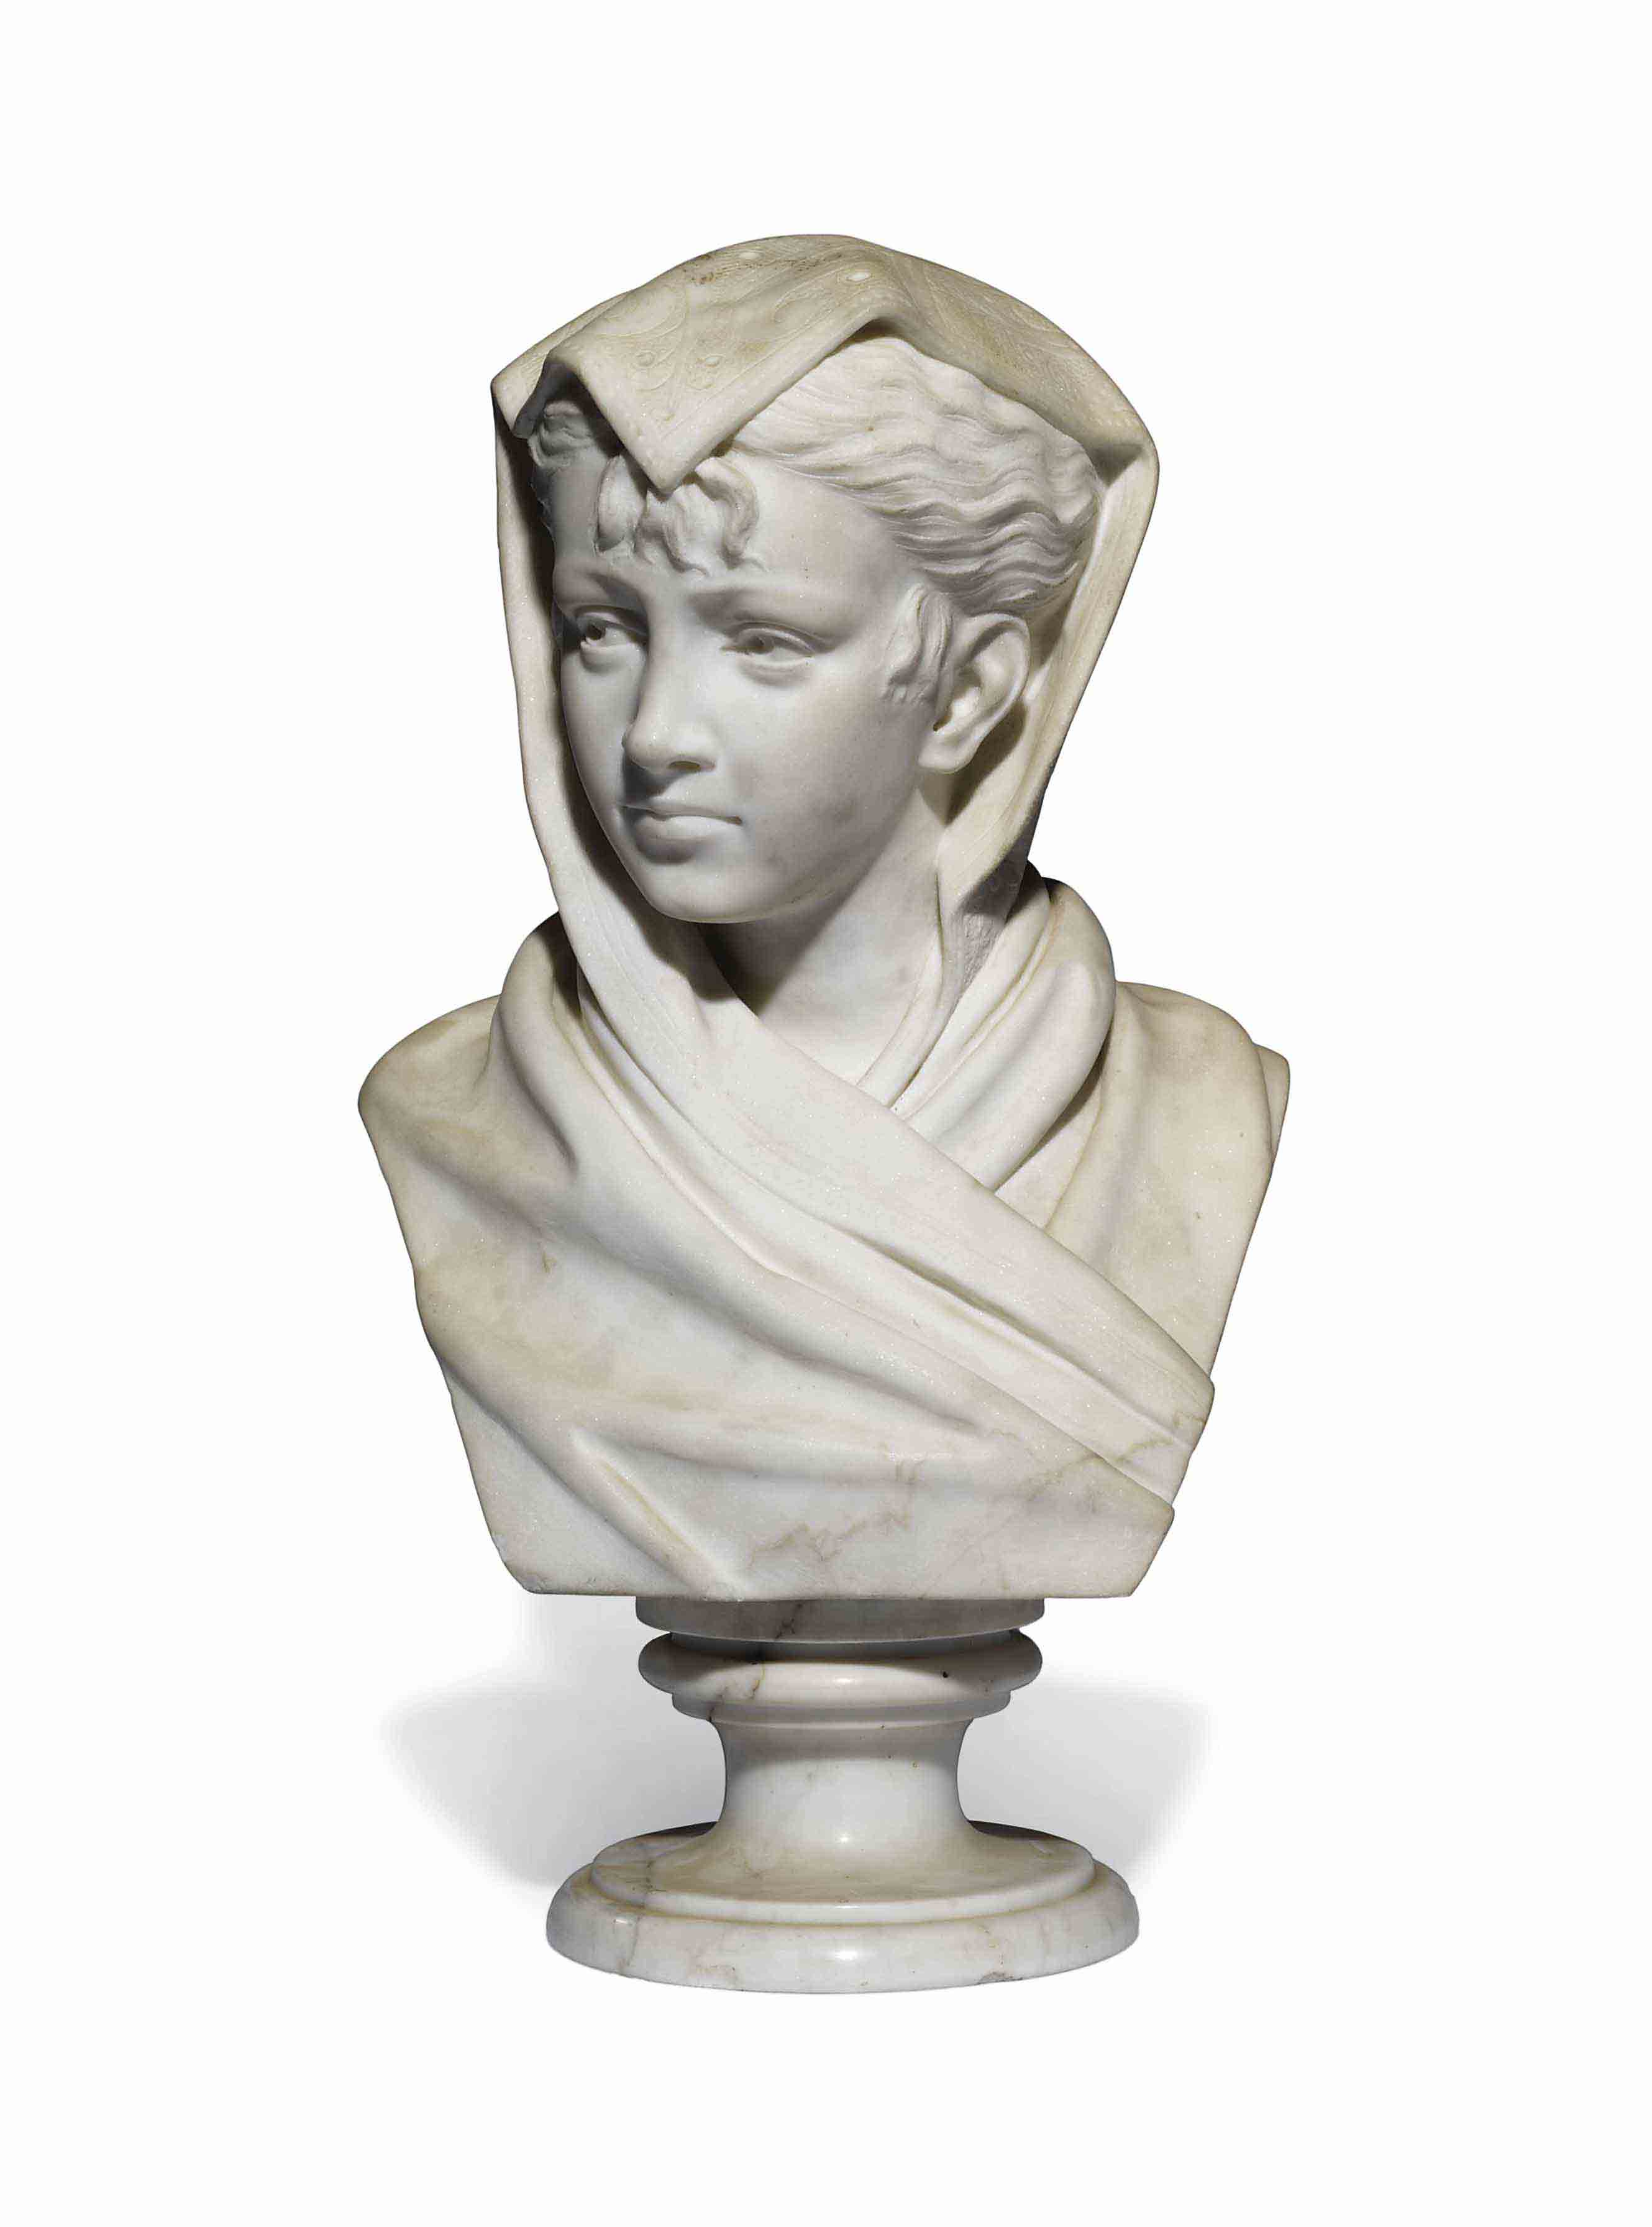 AN ITALIAN WHITE MARBLE BUST OF A YOUNG WOMAN